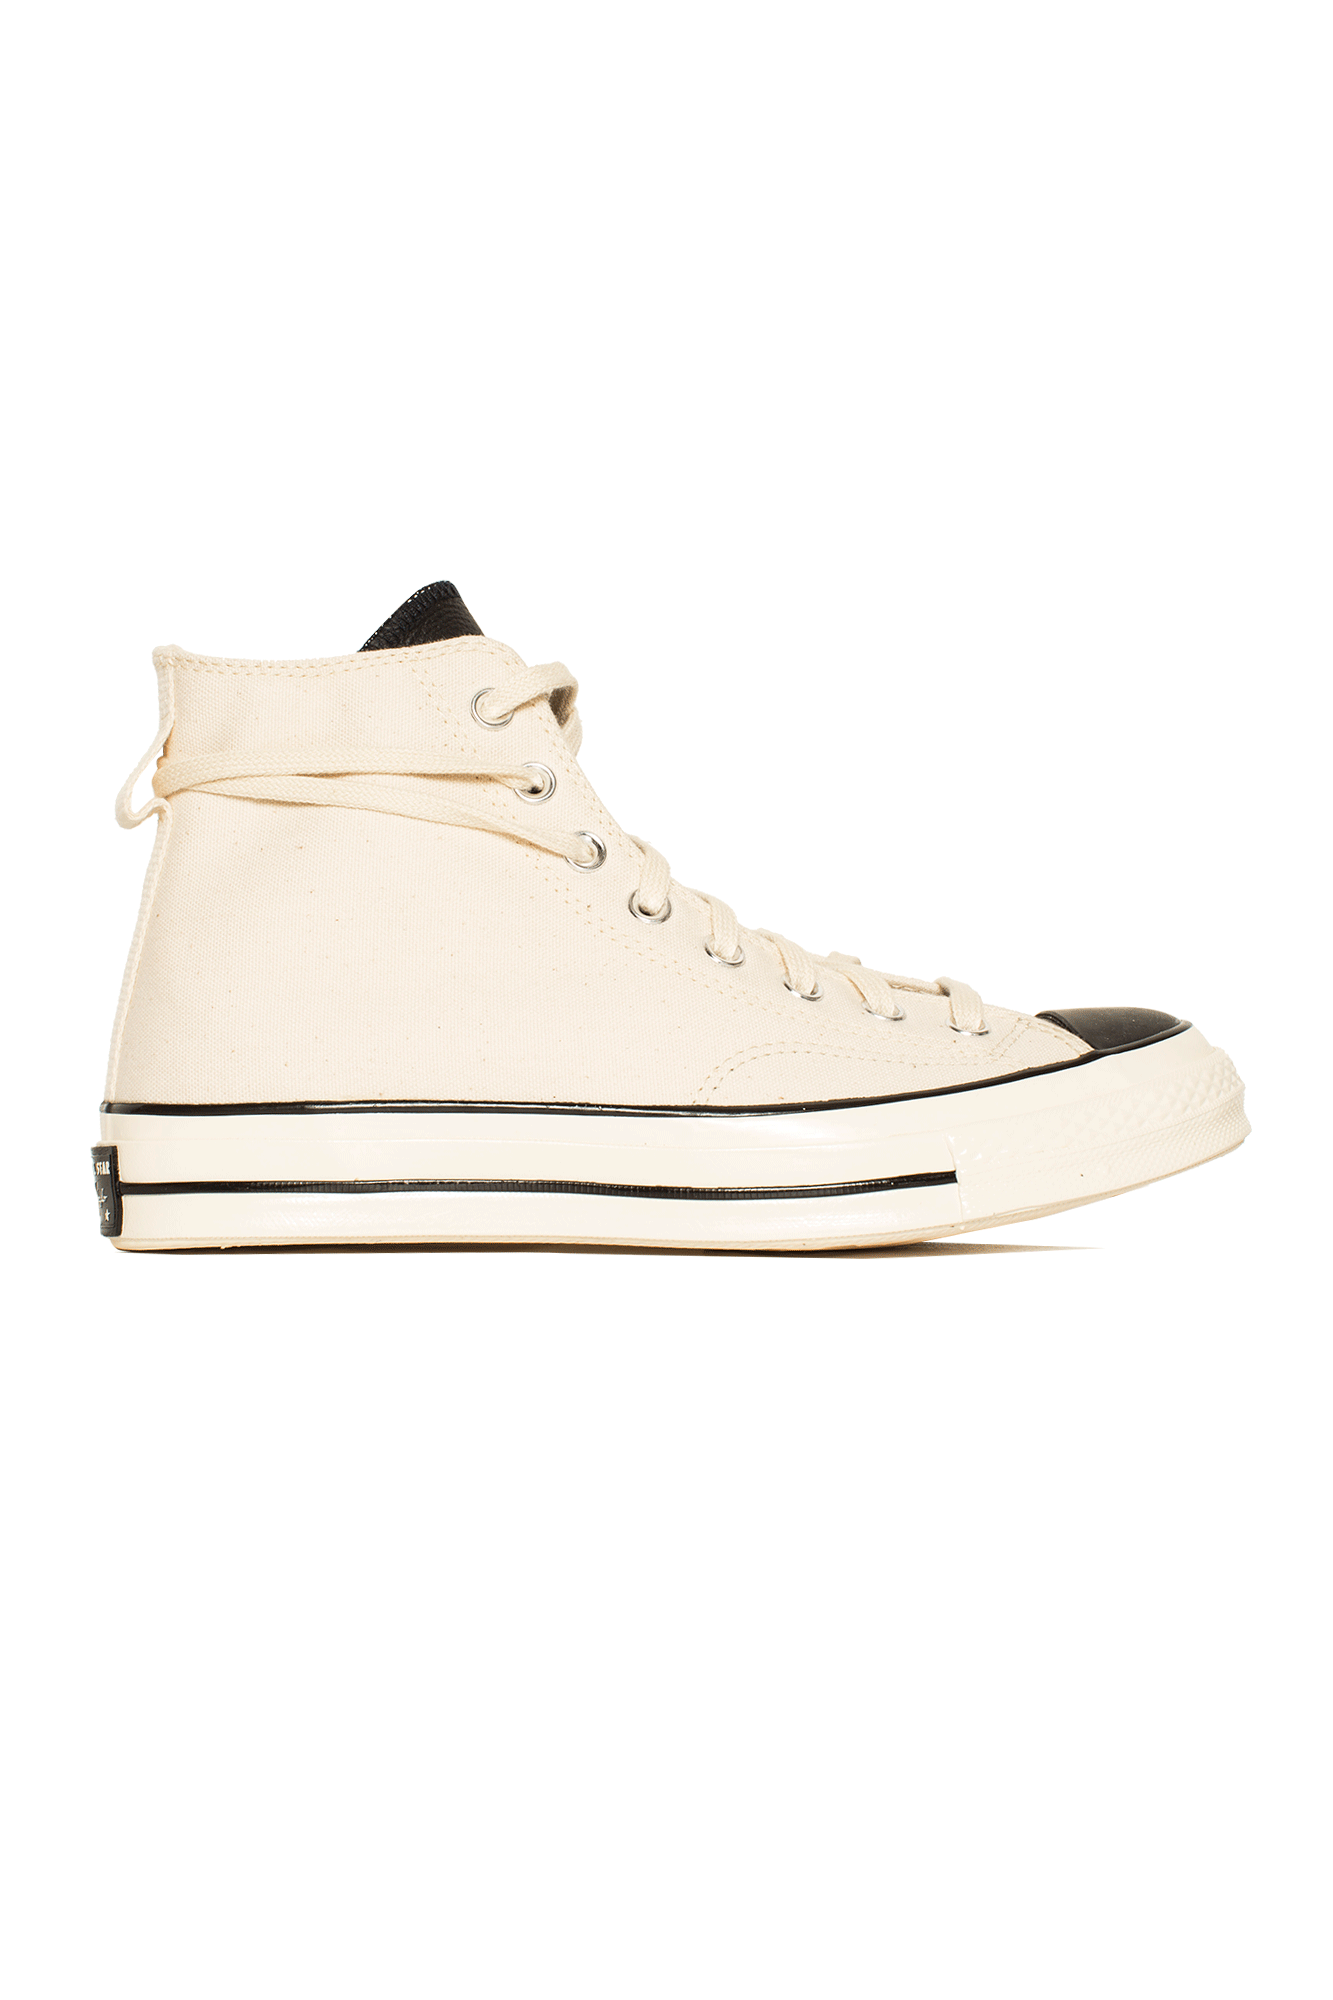 "Converse Sneakers Chuck 70 x FOG ""Essentials"" White 167955C#000#WHT#4,5 - One Block Down"